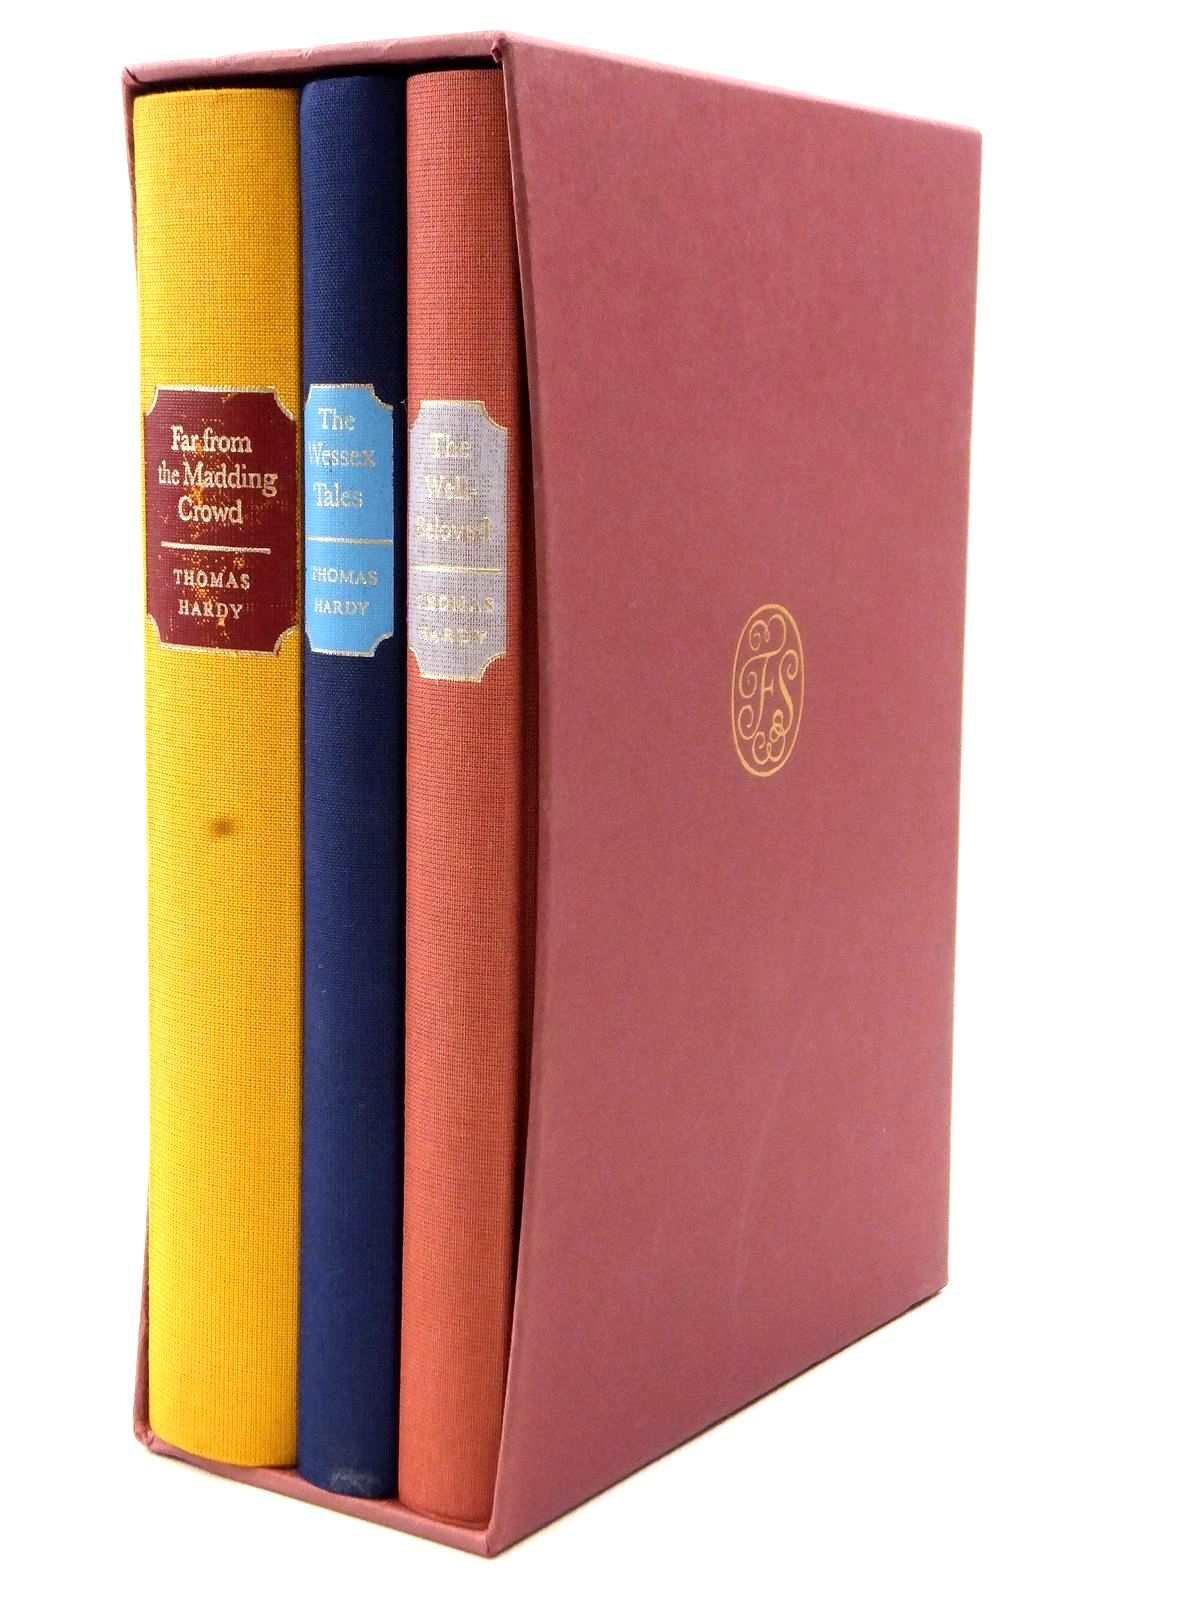 Photo of FAR FROM THE MADDING CROWD - THE WESSEX TALES - THE WELL-BELOVED (3 VOLUMES) written by Hardy, Thomas illustrated by Reddick, Peter published by Folio Society (STOCK CODE: 2122744)  for sale by Stella & Rose's Books